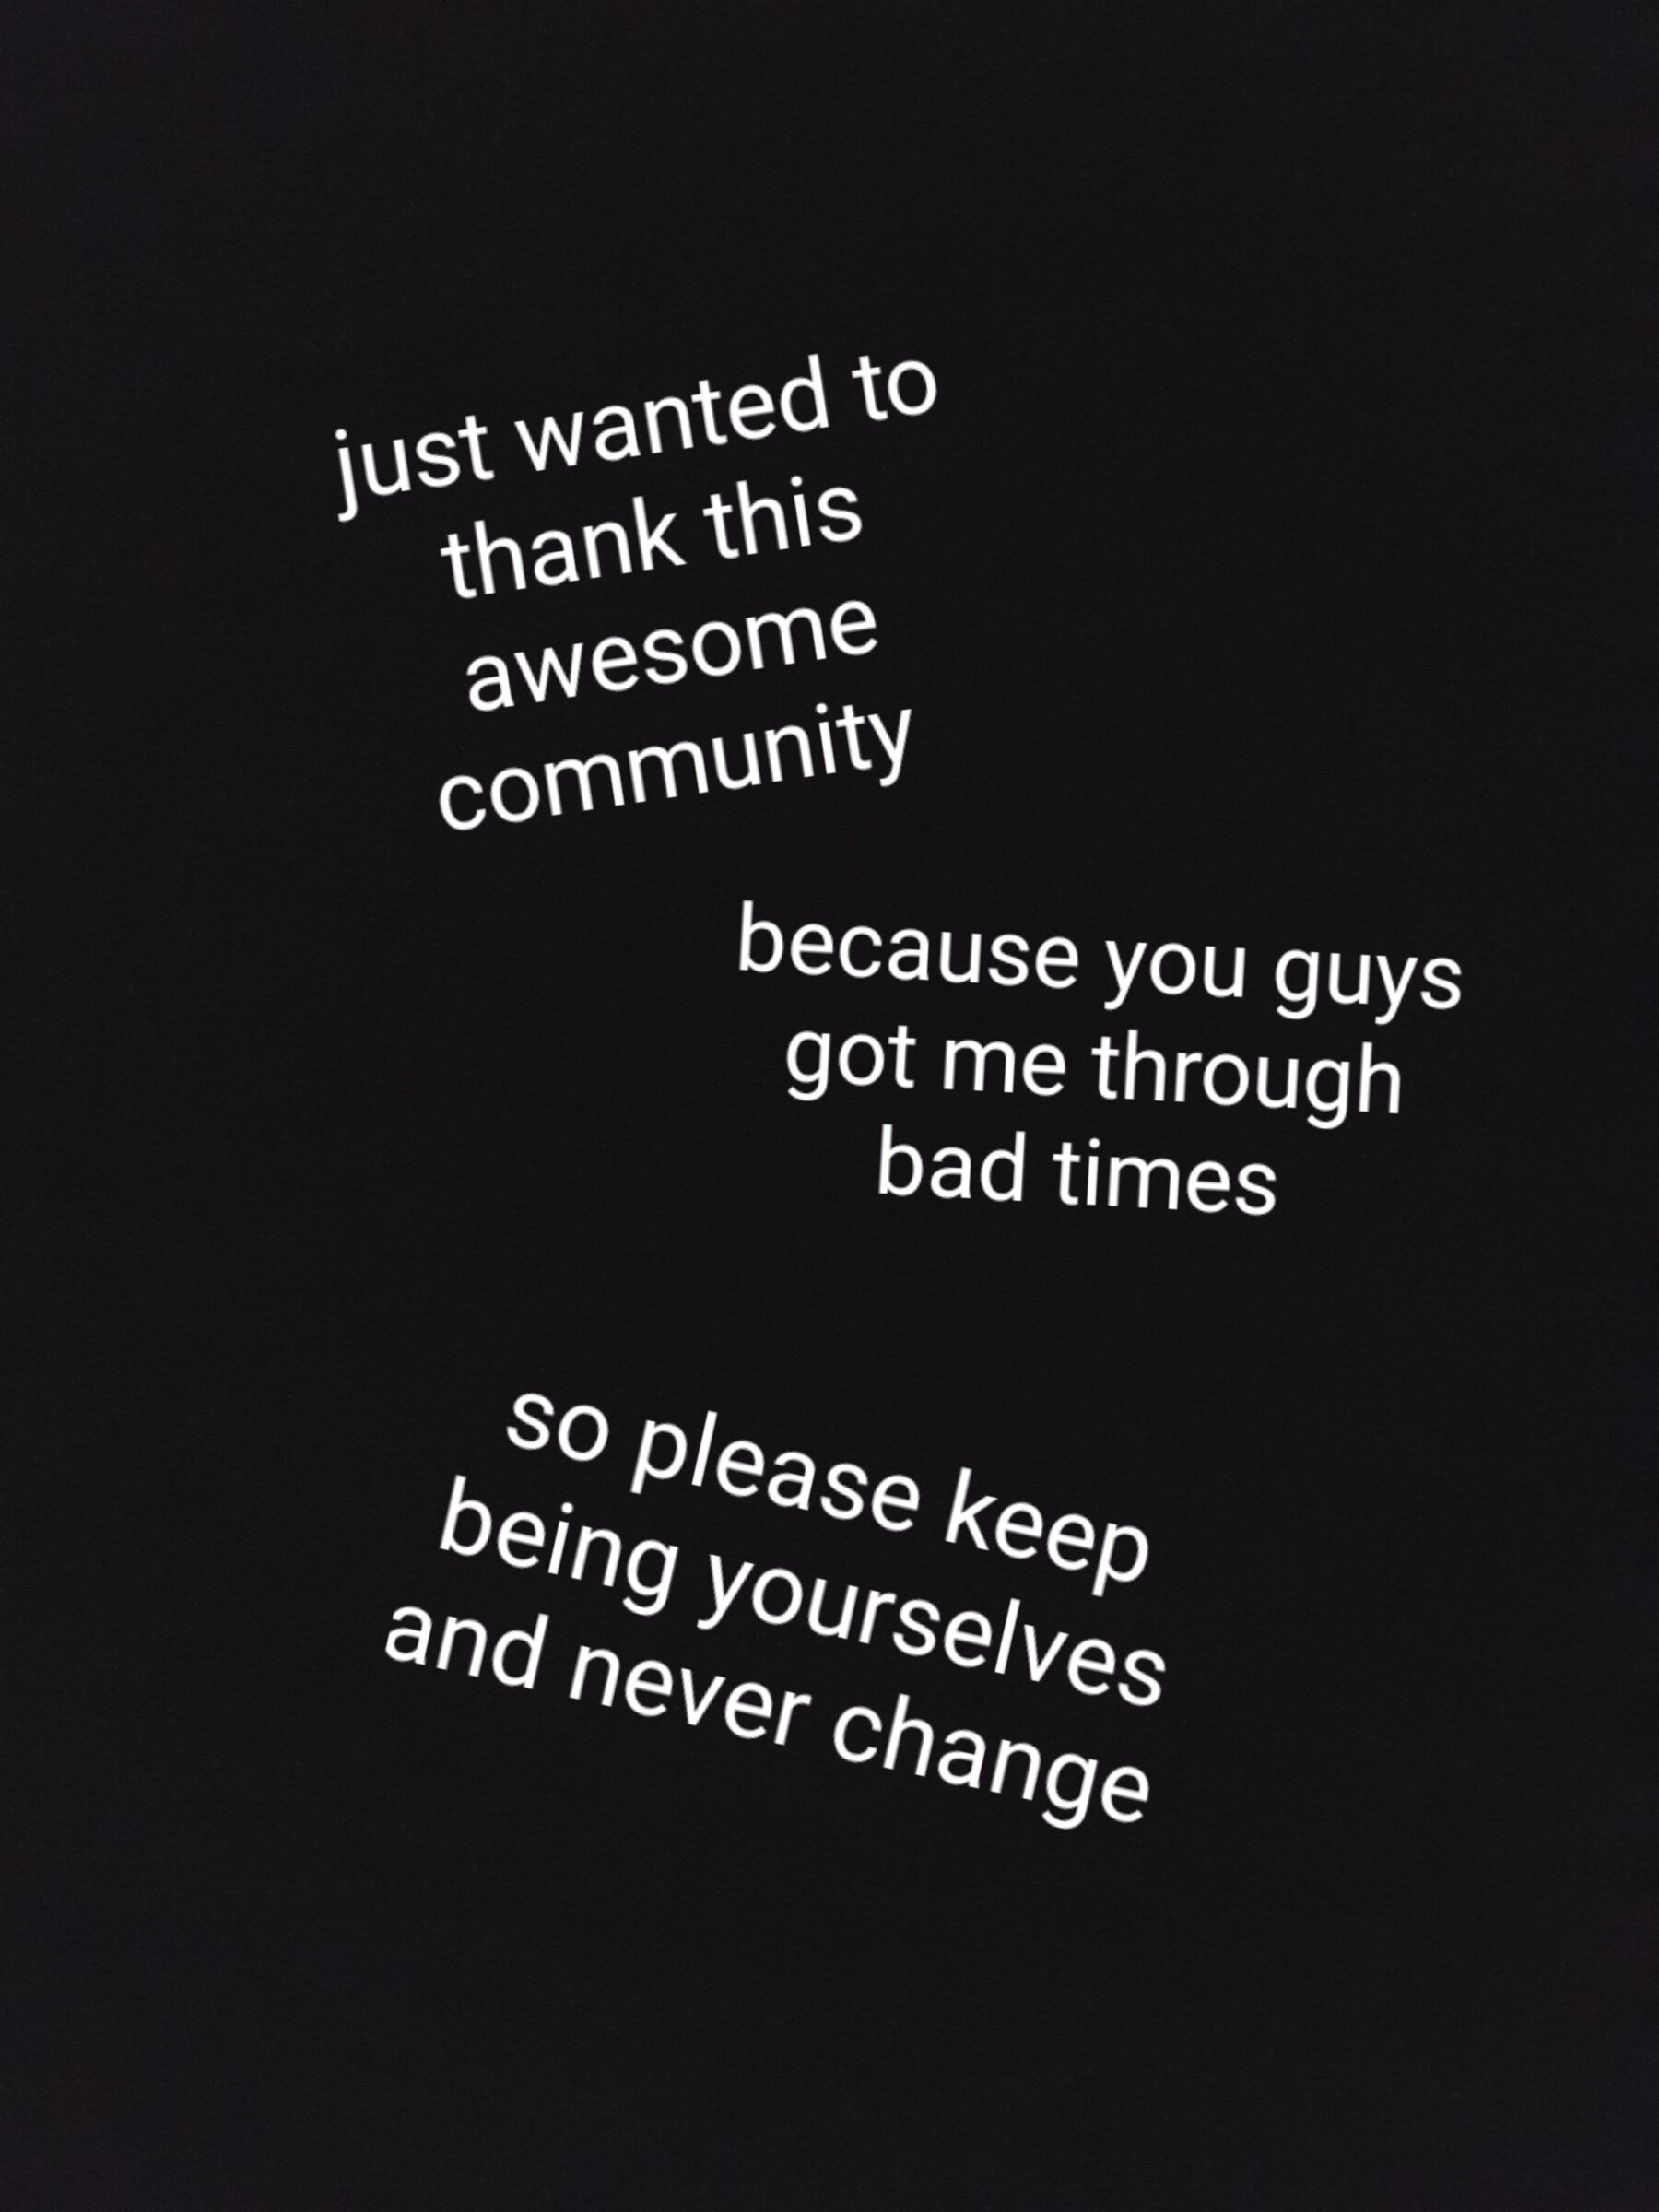 Wholesome memes, Thank Wholesome Memes Wholesome memes, Thank text: because you guys got me through bad so please keep being yourselves and never change